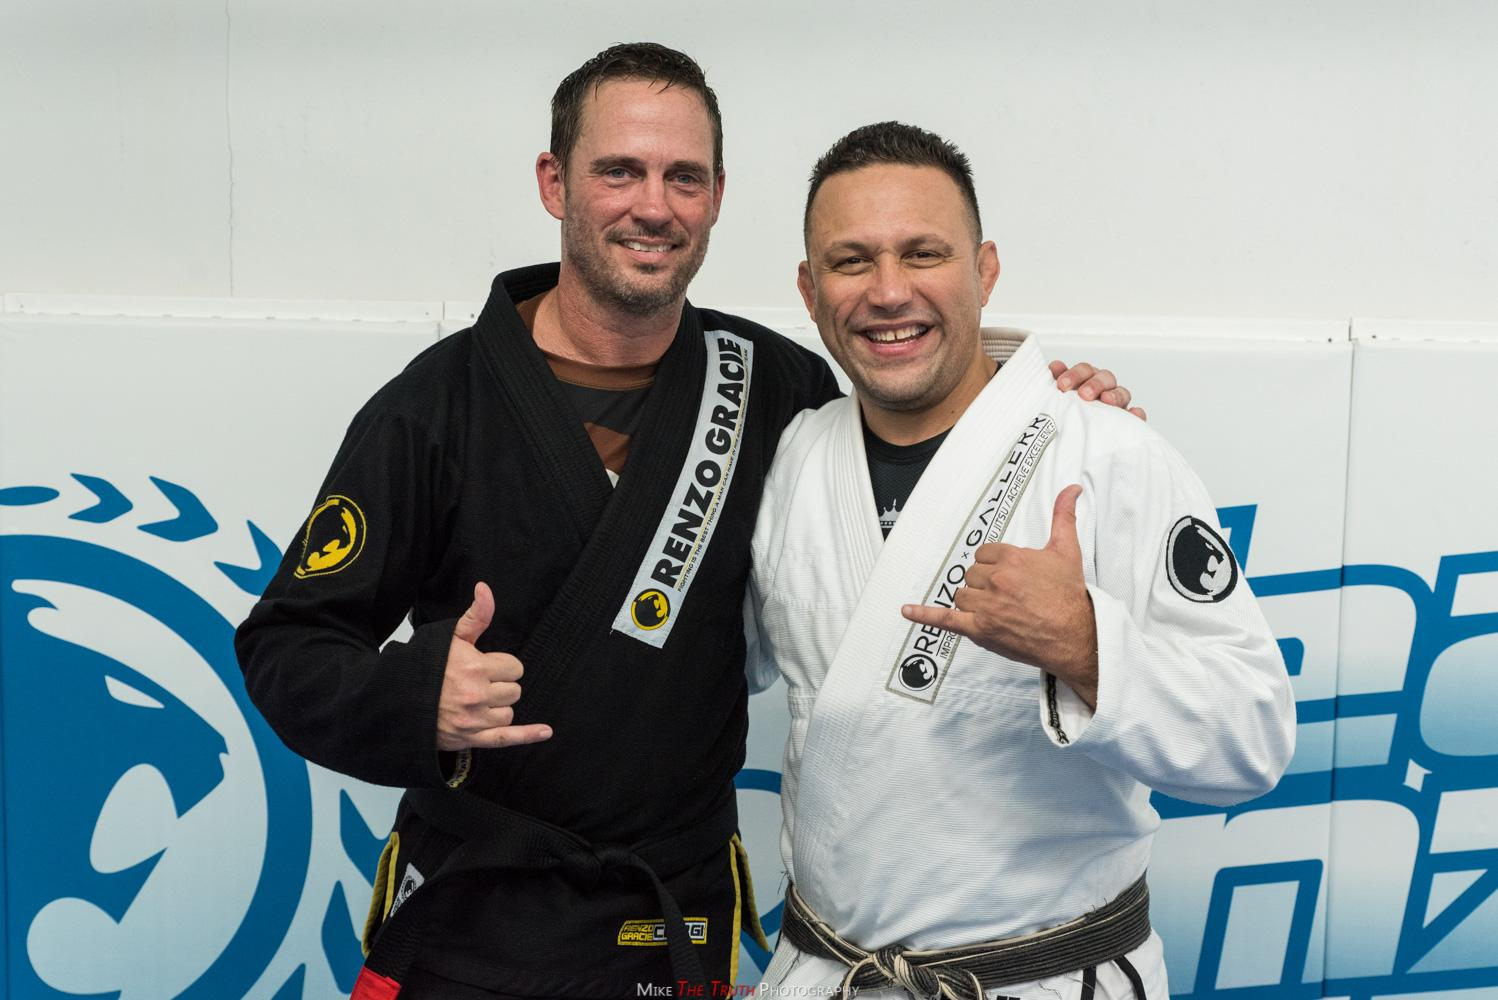 UFC Matchmaker Mick Maynard receives black belt from Renzo Gracie After 15 Years